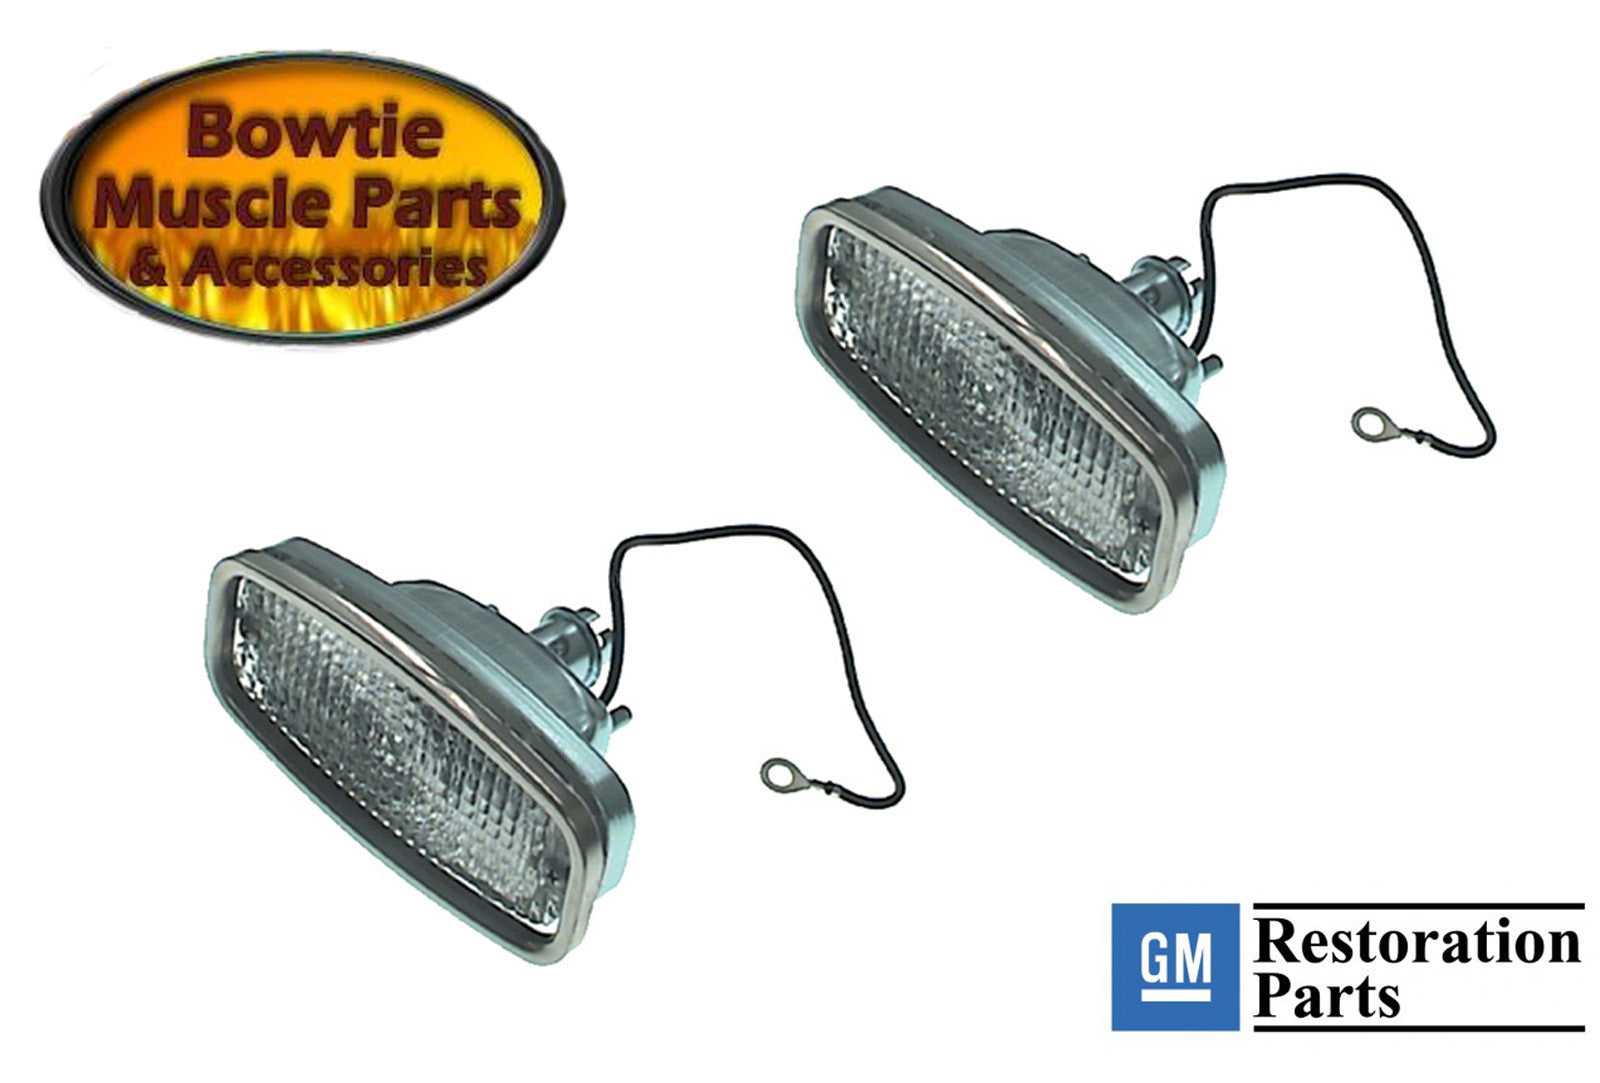 68 camaro parking lamp assembly pair excellent quality gm 68 camaro parking lamp assembly pair excellent quality gm restoration part mozeypictures Image collections